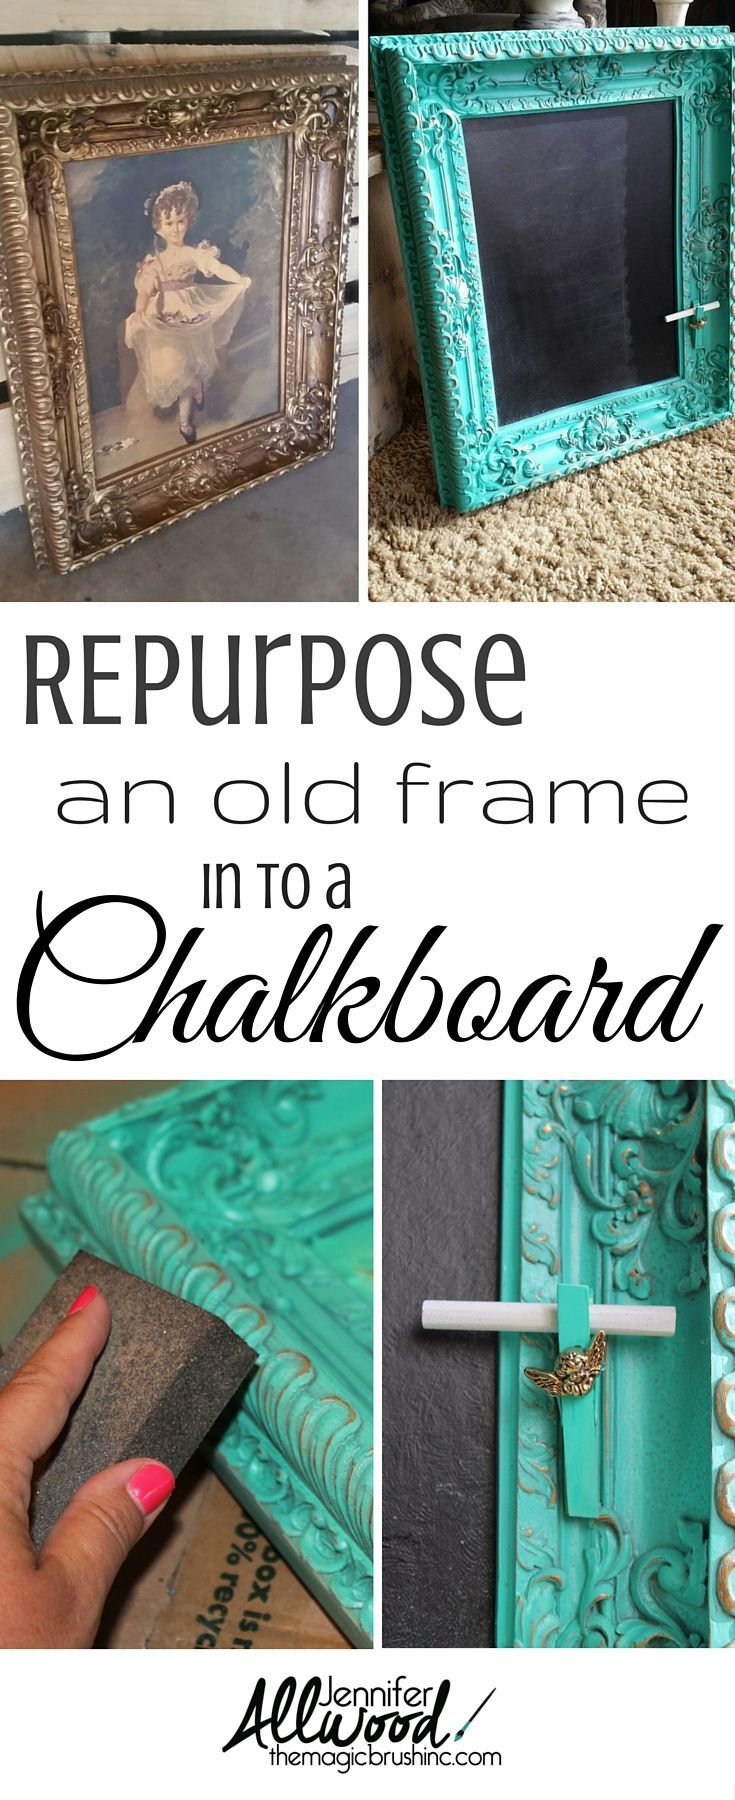 How to make a chalkboard from an old framed print | Pinterest ...